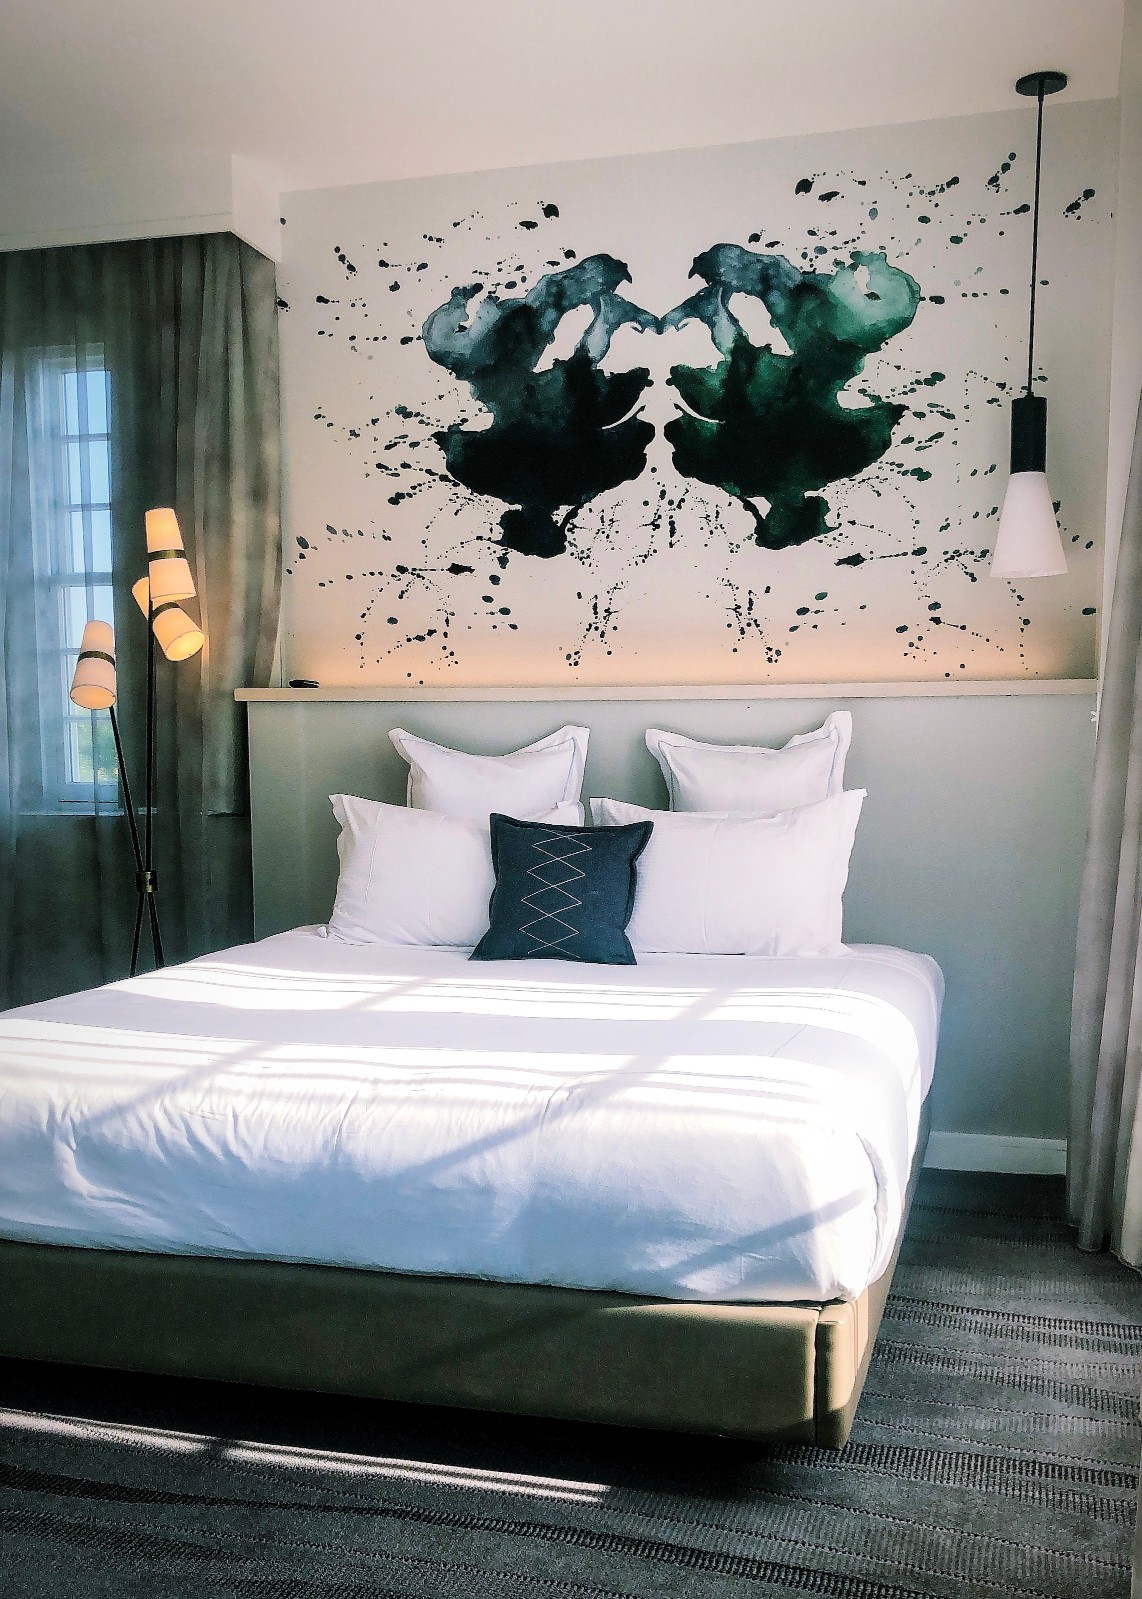 The Kimpton Lorien Hotel